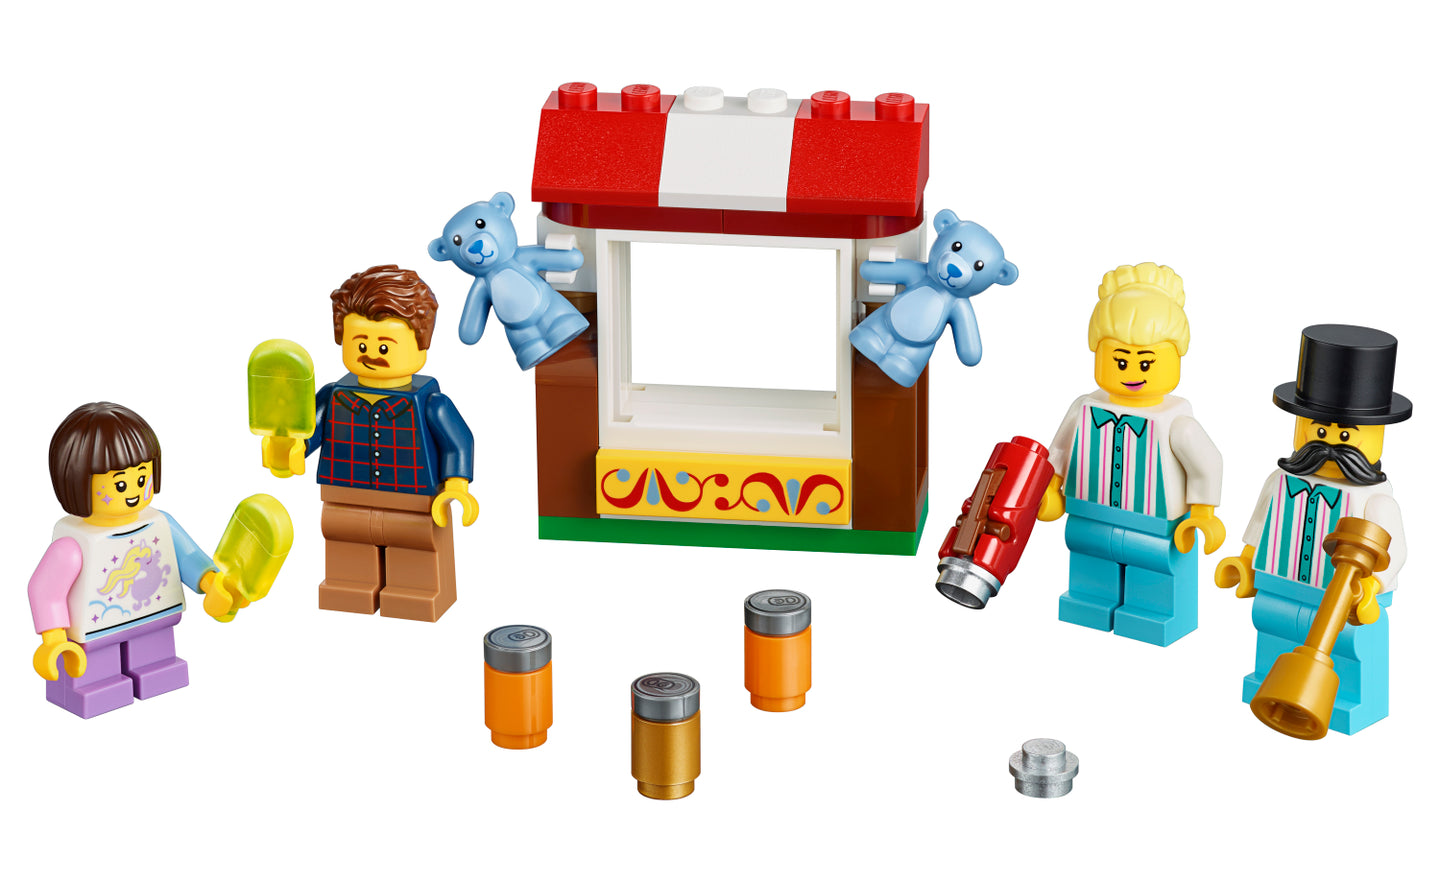 40373 | LEGO® Iconic Fairground MF Acc. Set